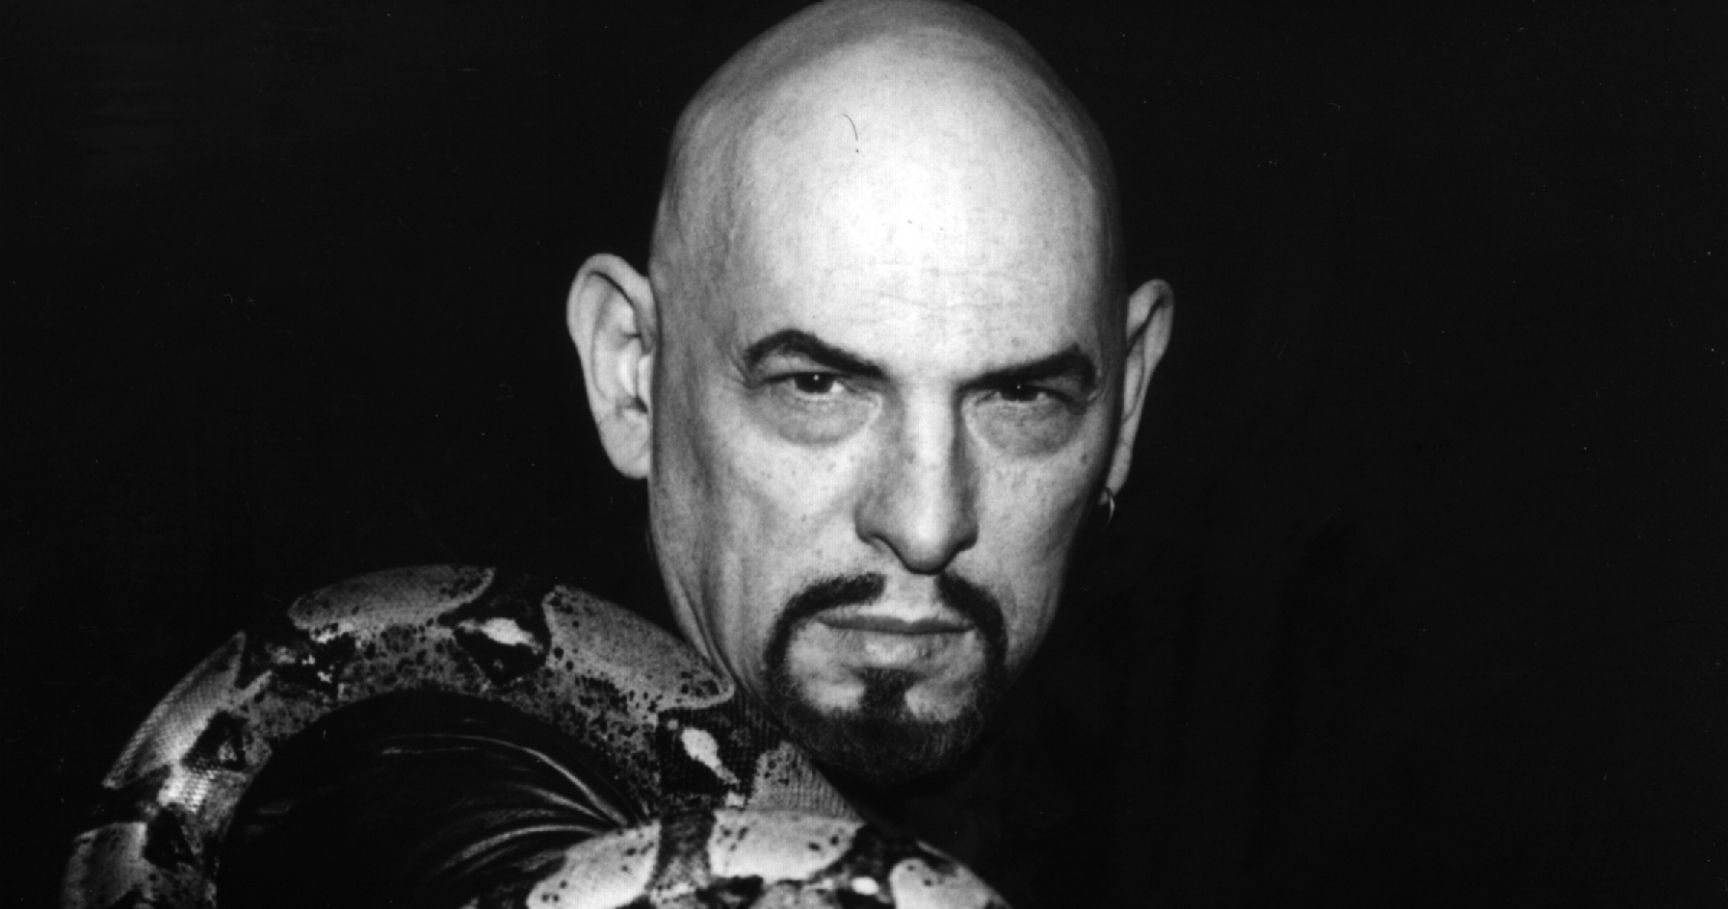 10 Incredible Facts About the Church of Satan You Won't Believe